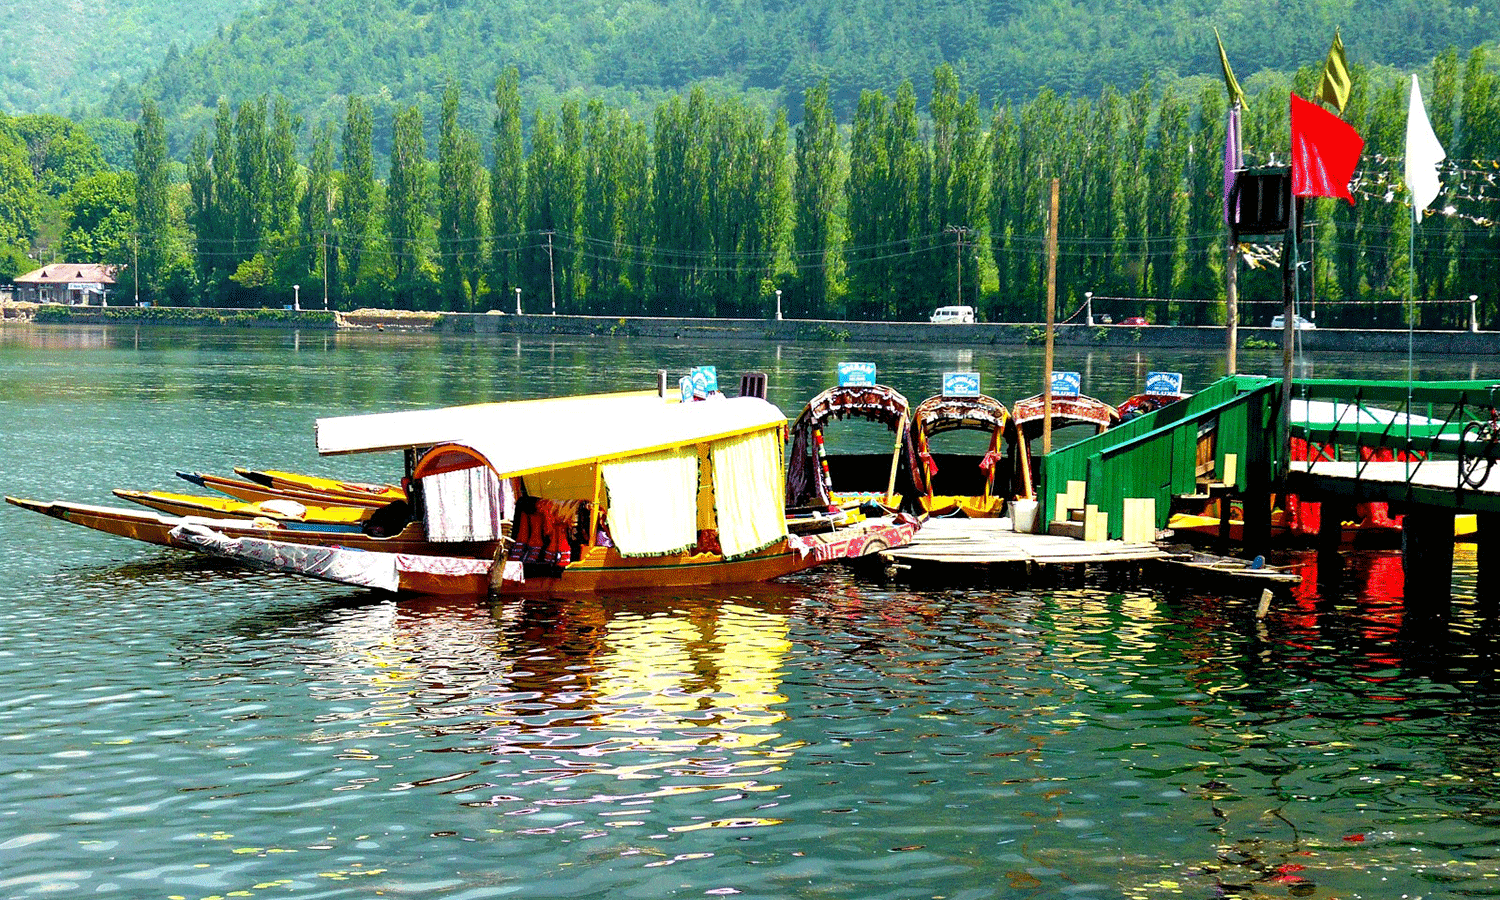 Kashmir Tour By Boat